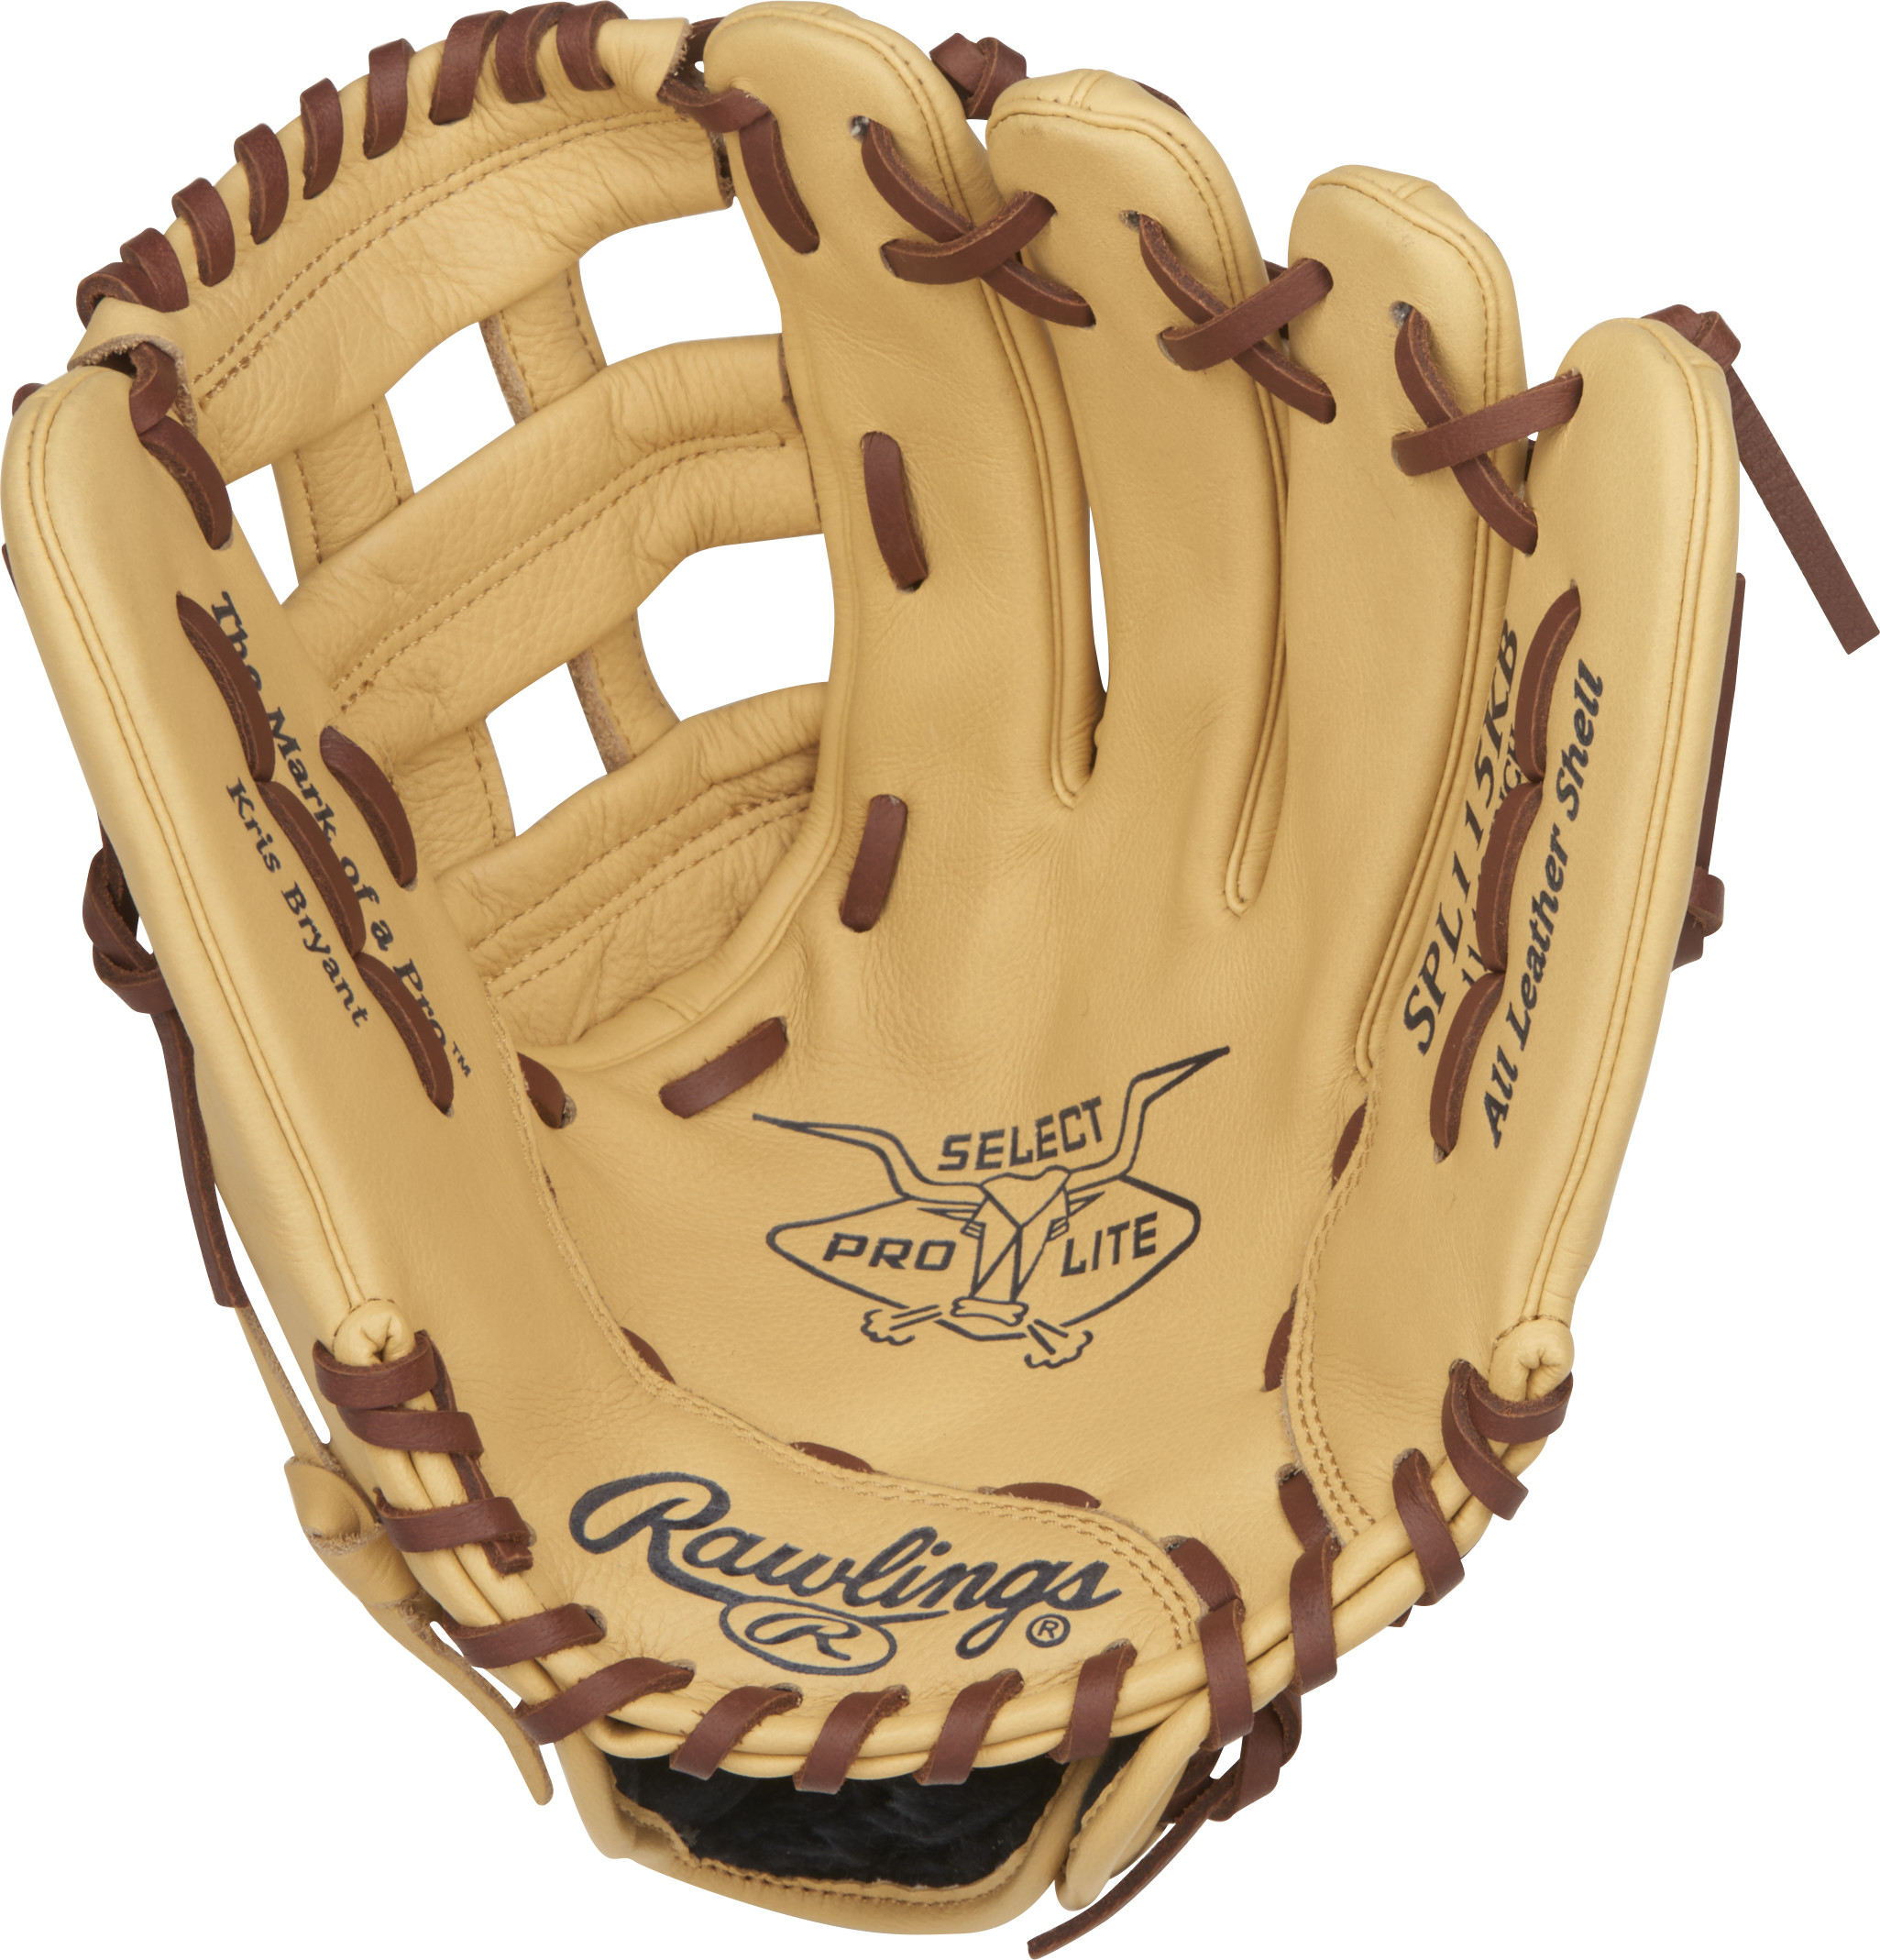 http://www.bestbatdeals.com/images/gloves/rawlings/SPL115KB-1.jpg